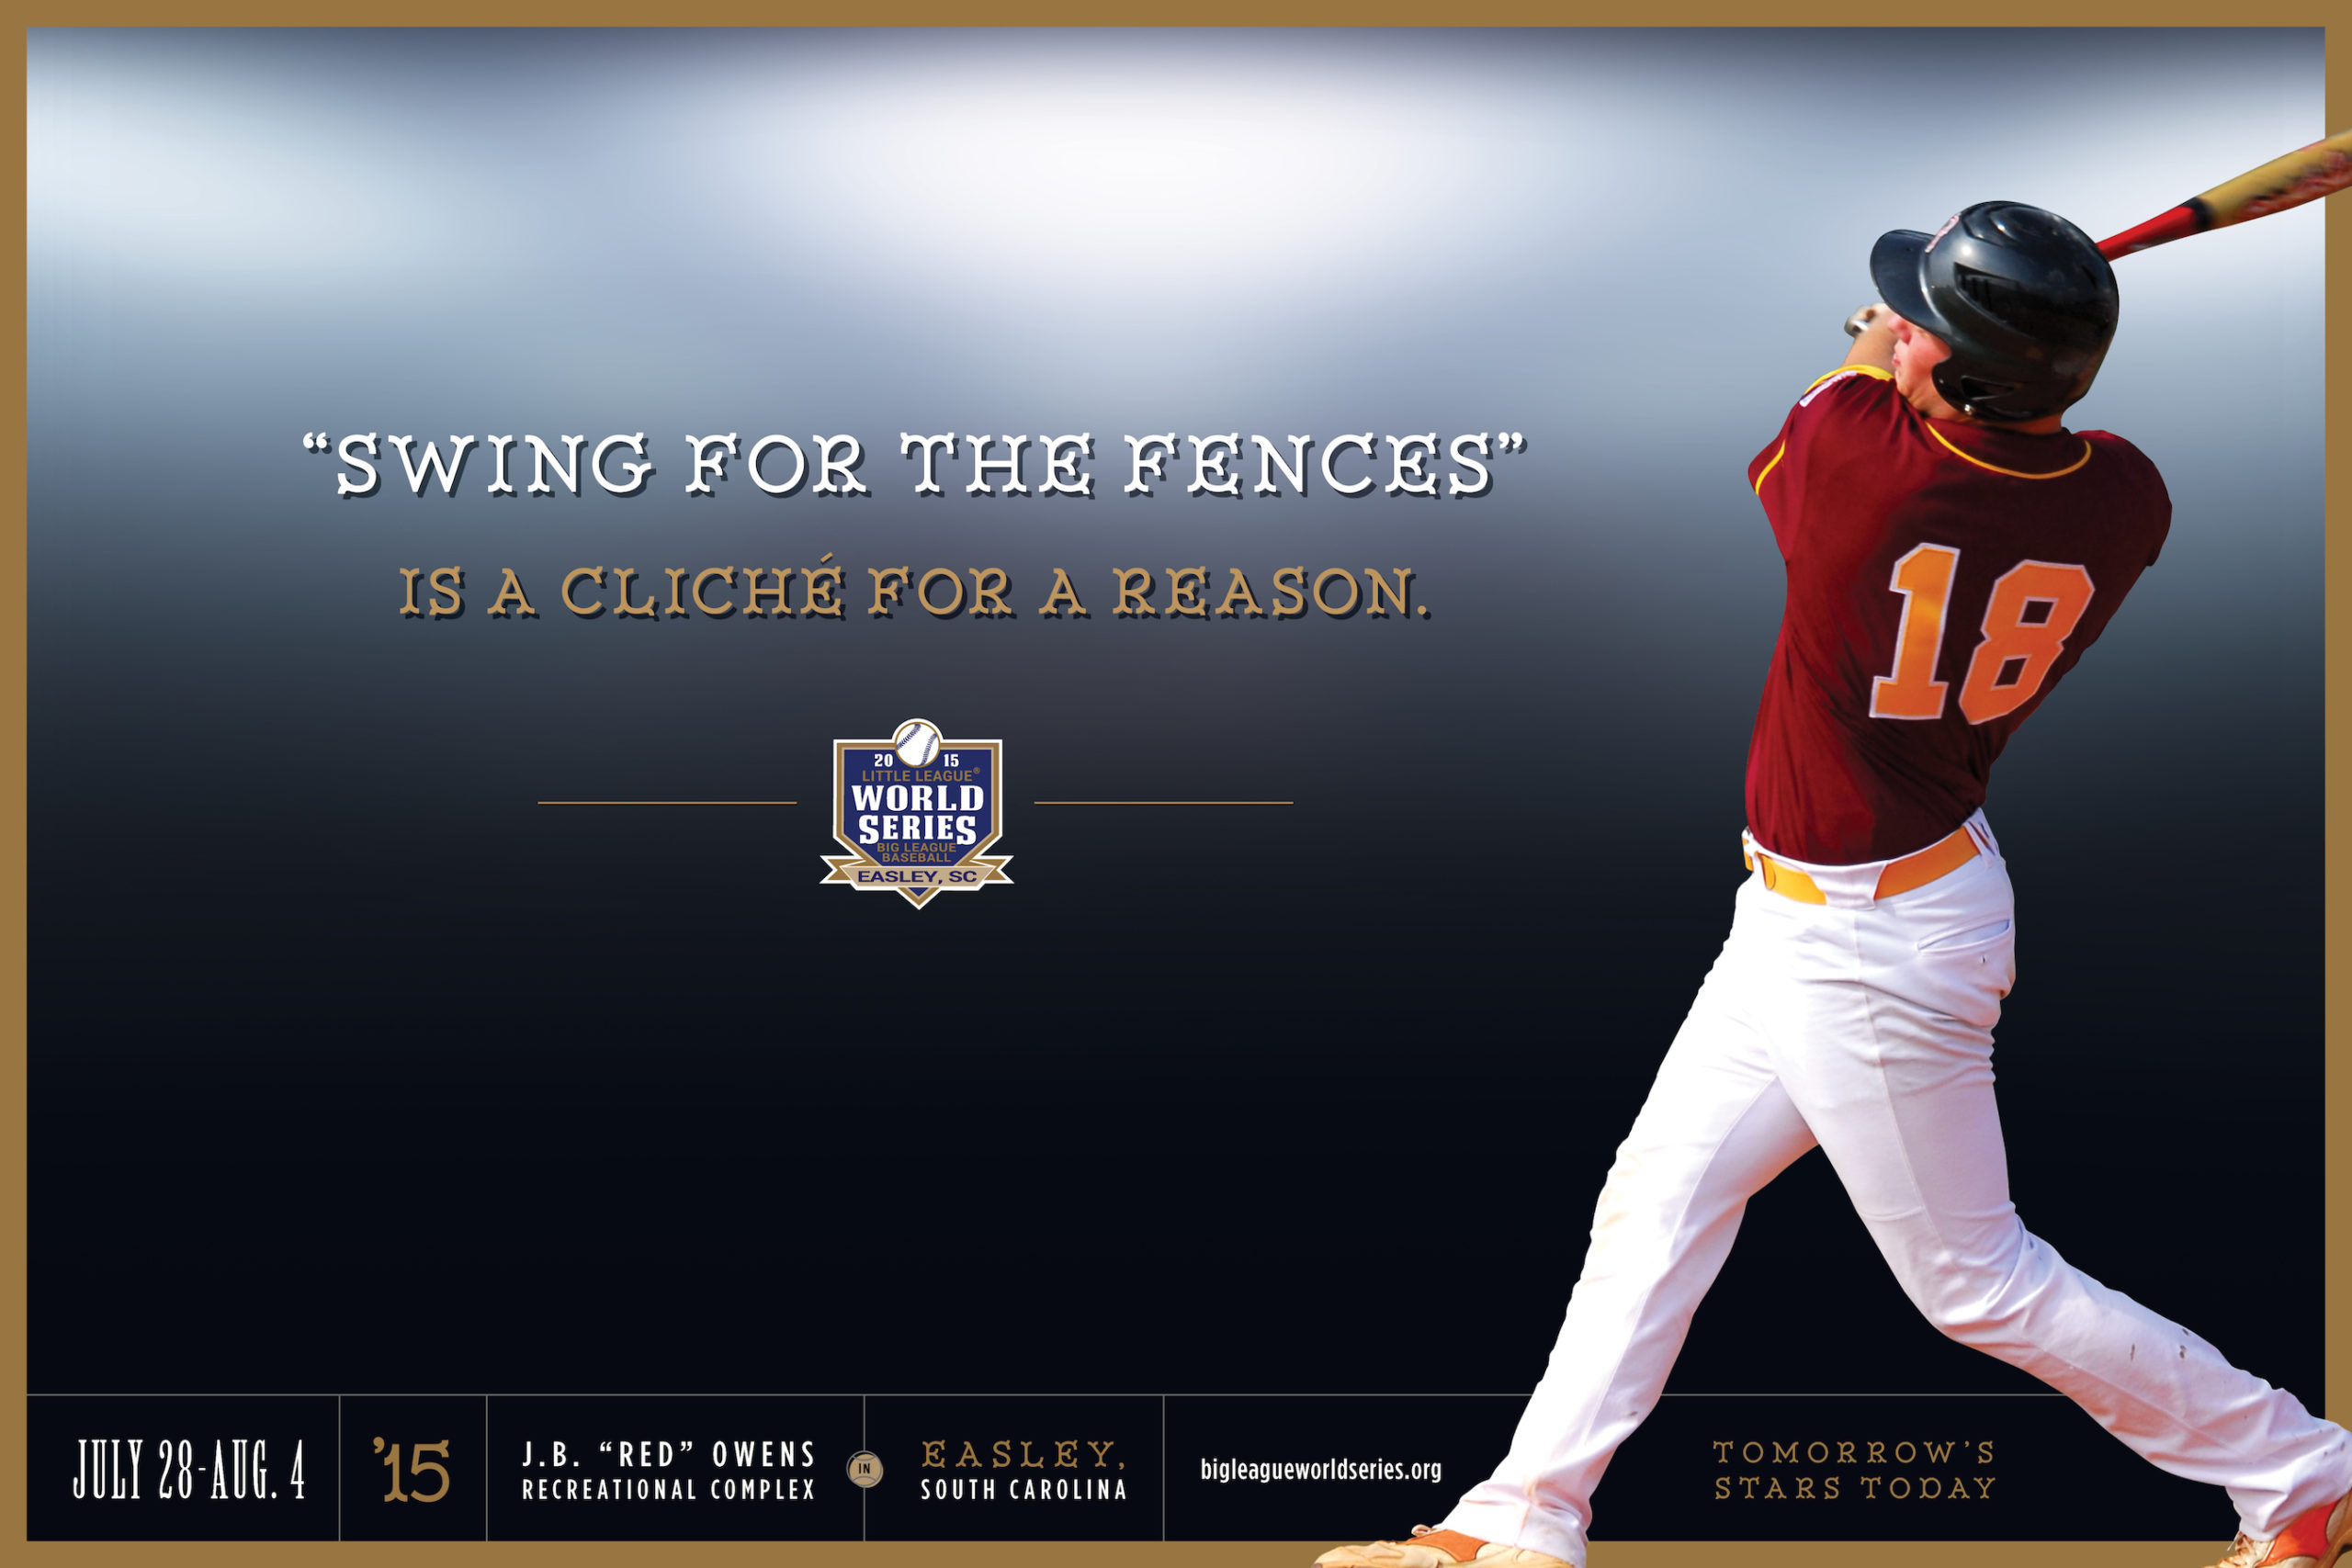 Big-League-World-Series-baseball-poster-advertising-copywriting-Lochness-Marketing-HR